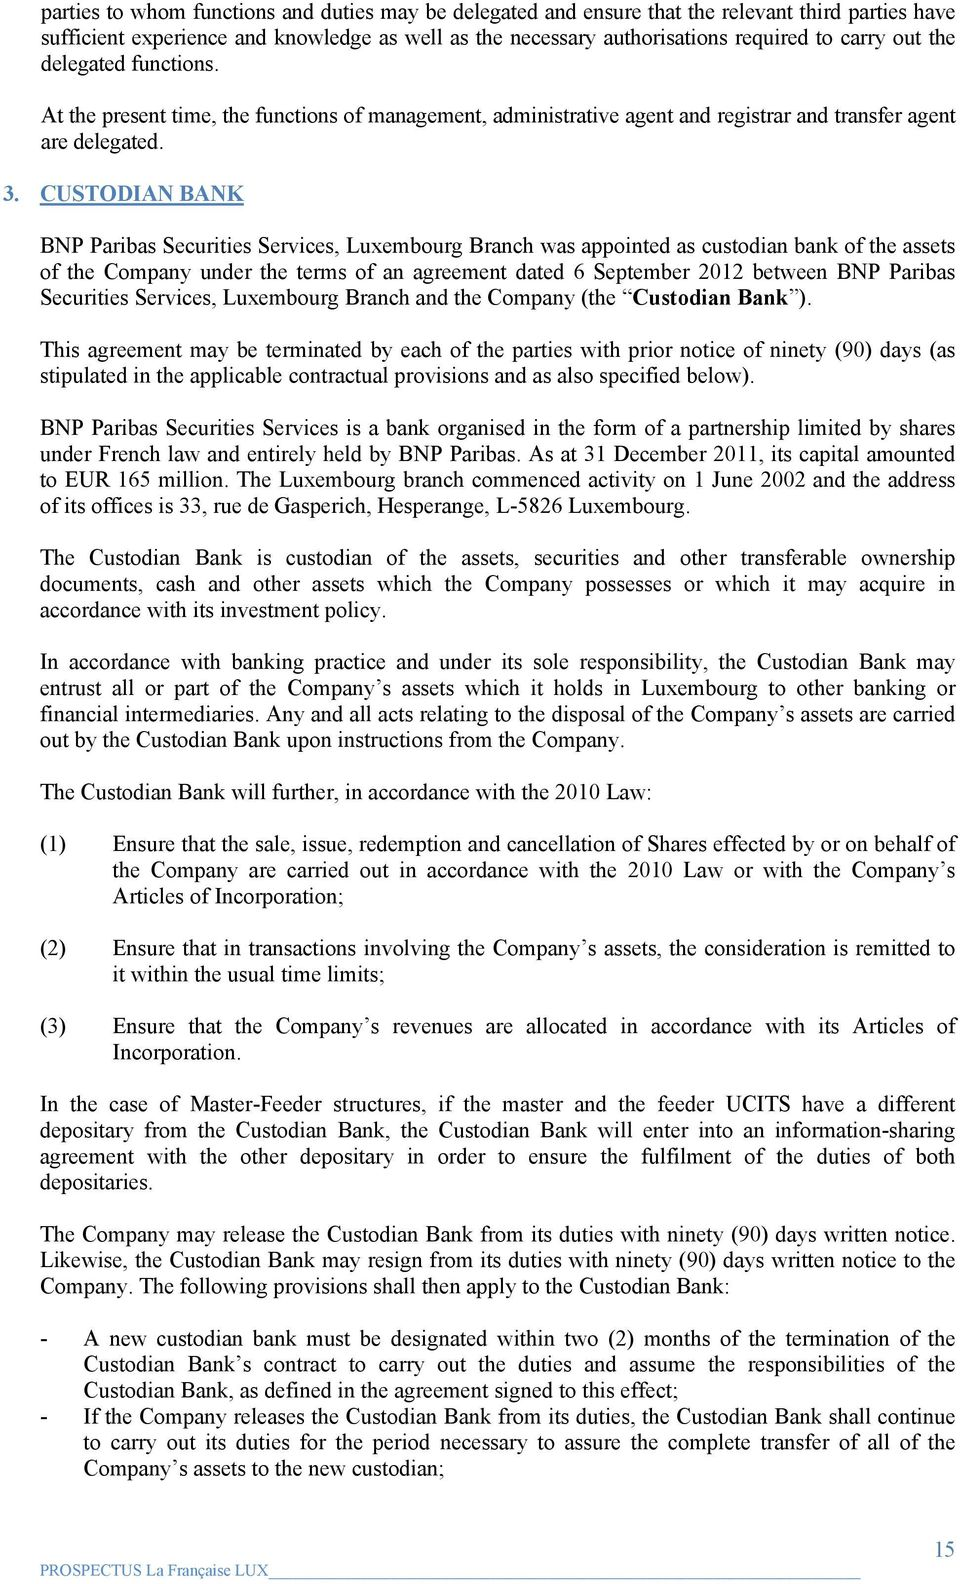 CUSTODIAN BANK BNP Paribas Securities Services, Luxembourg Branch was appointed as custodian bank of the assets of the Company under the terms of an agreement dated 6 September 2012 between BNP